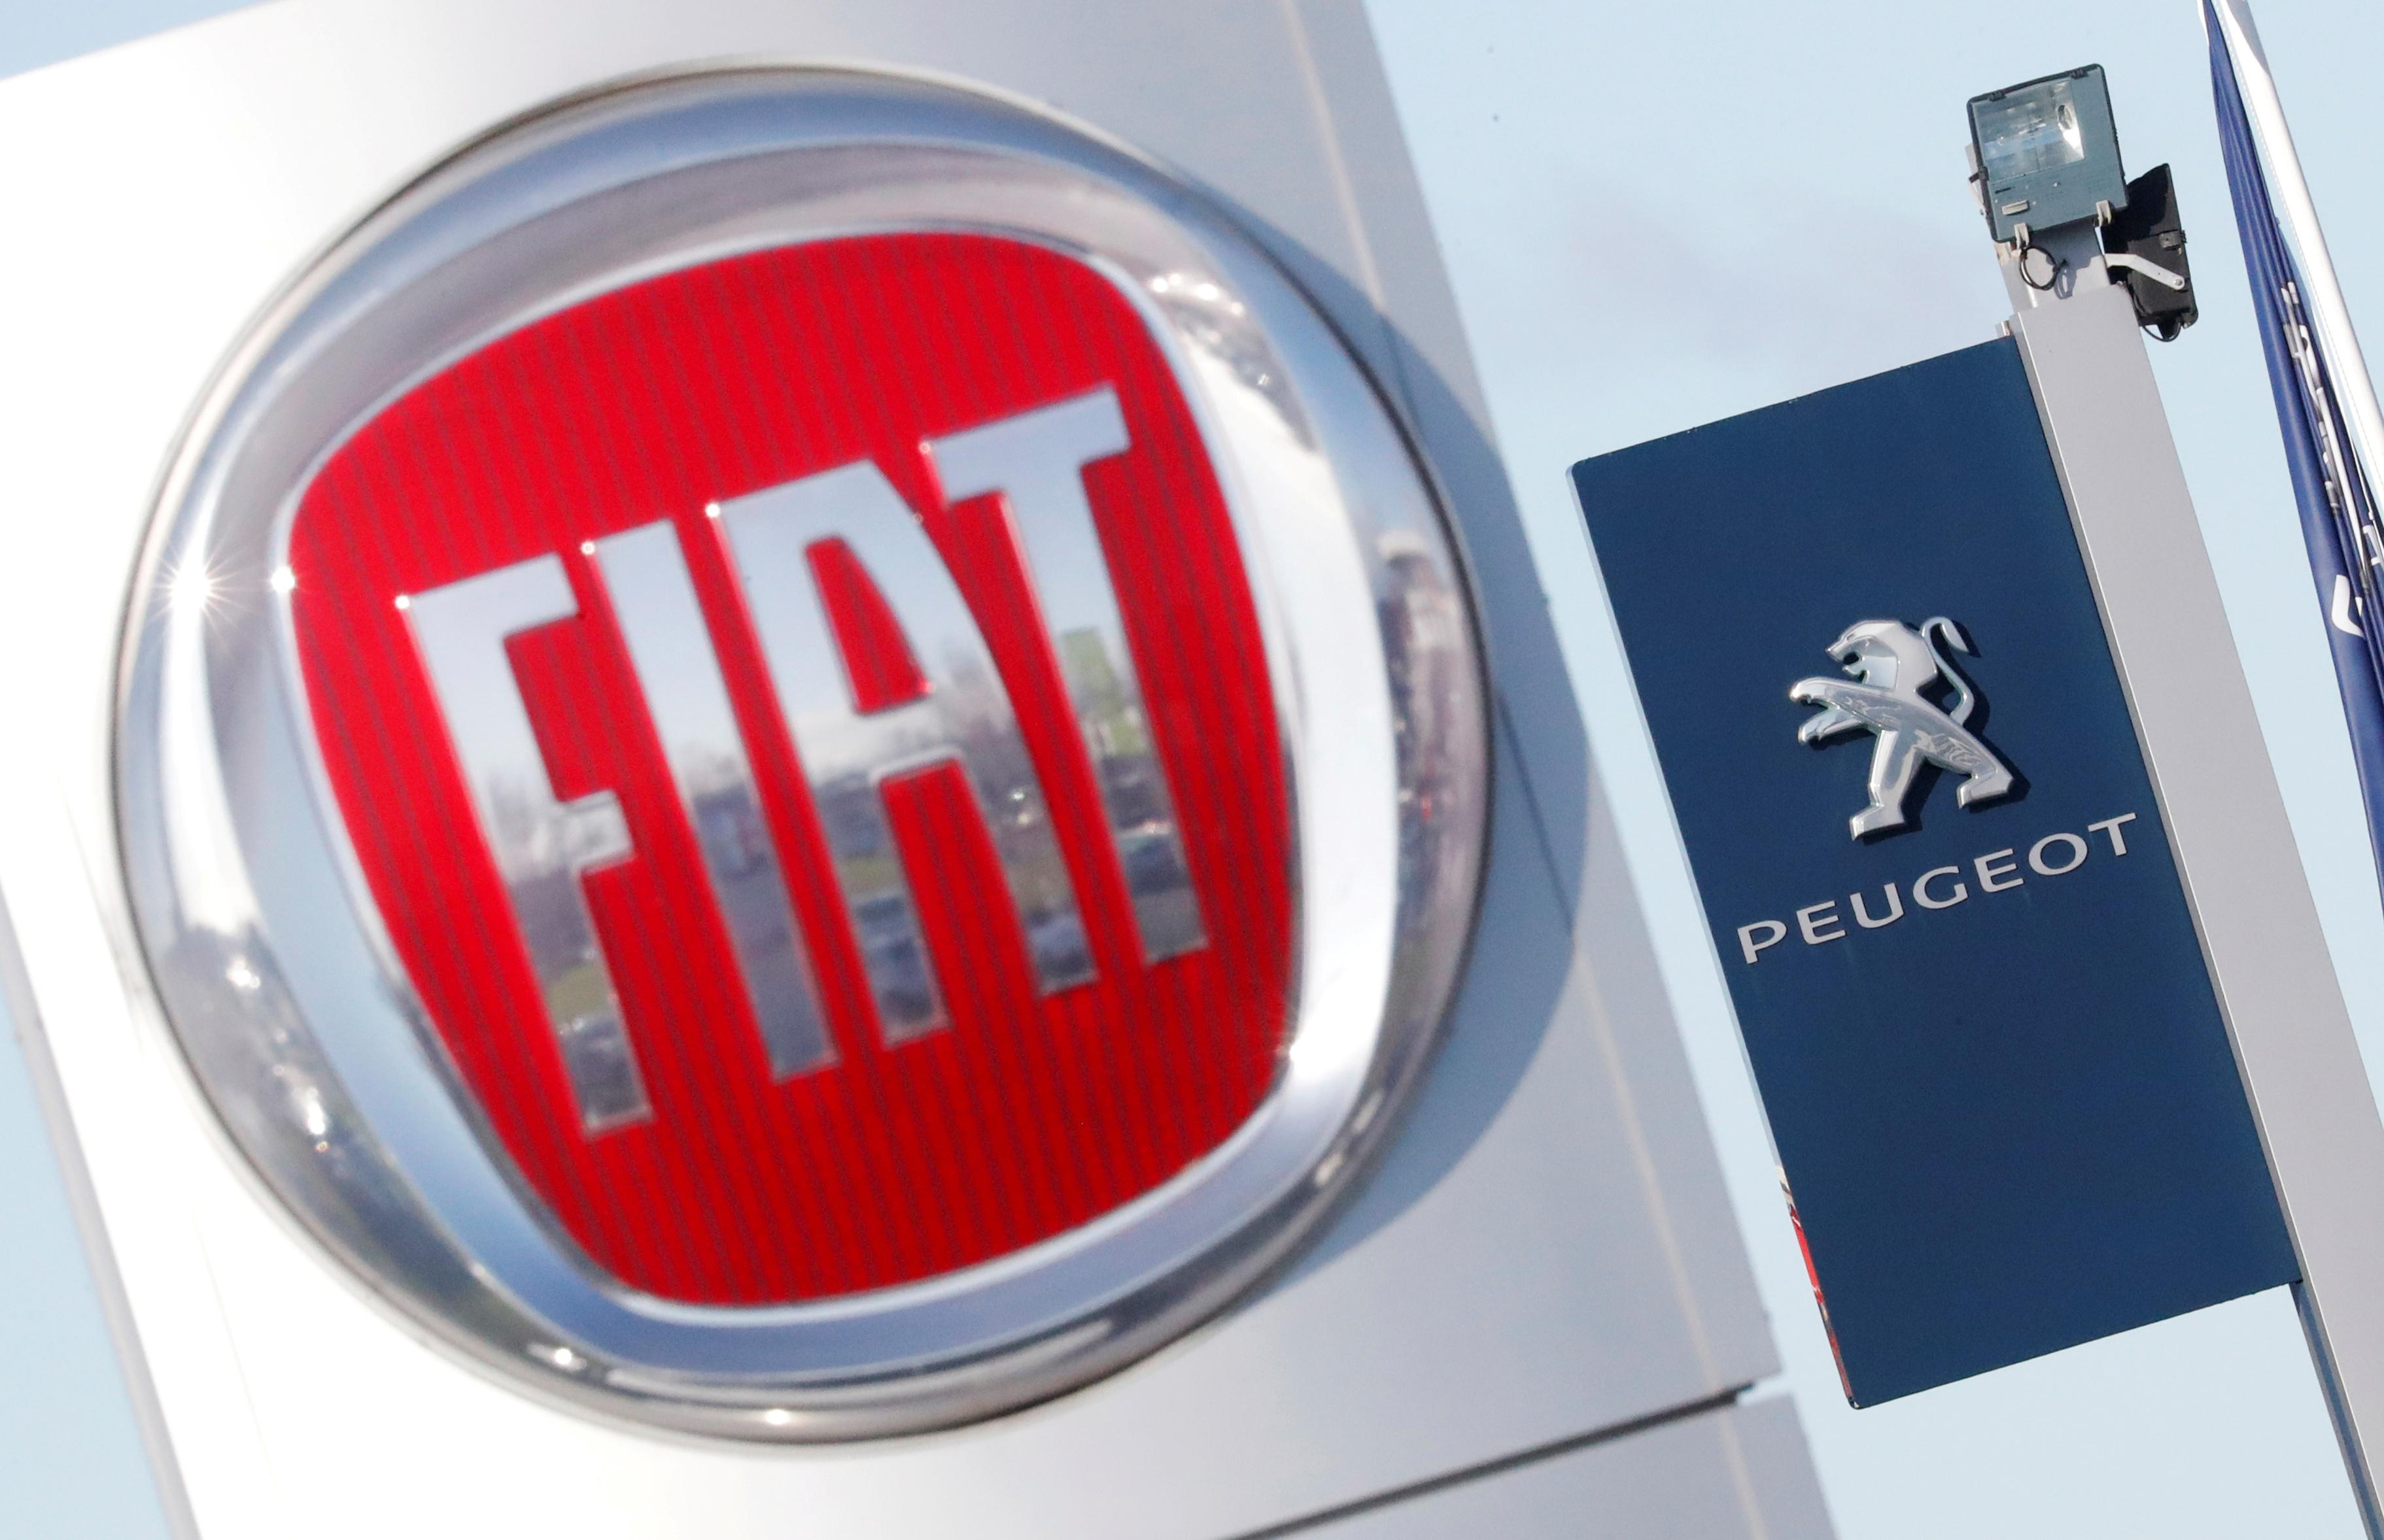 Peugeot's small car platforms should be favored in Fiat merger:...